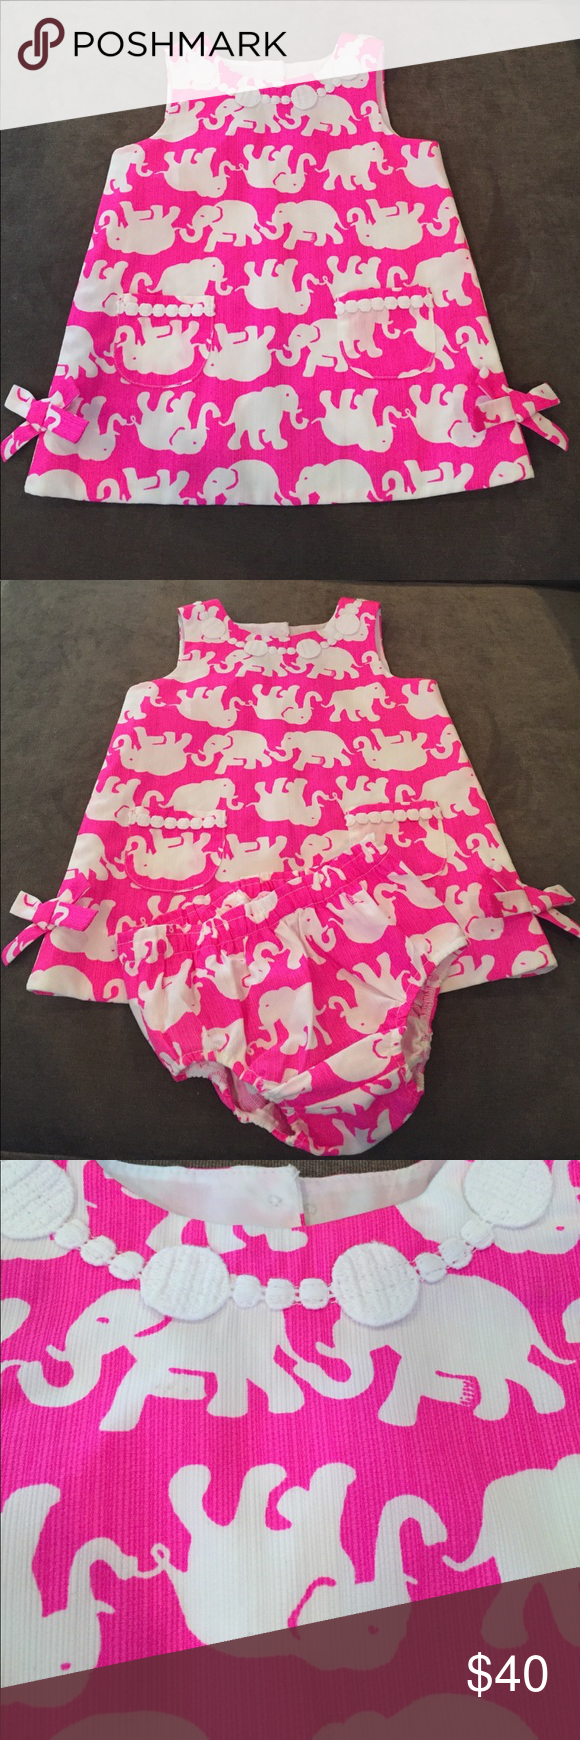 Lilly Pulitzer Baby Shift Diaper Cover Pink Elephant Diapers